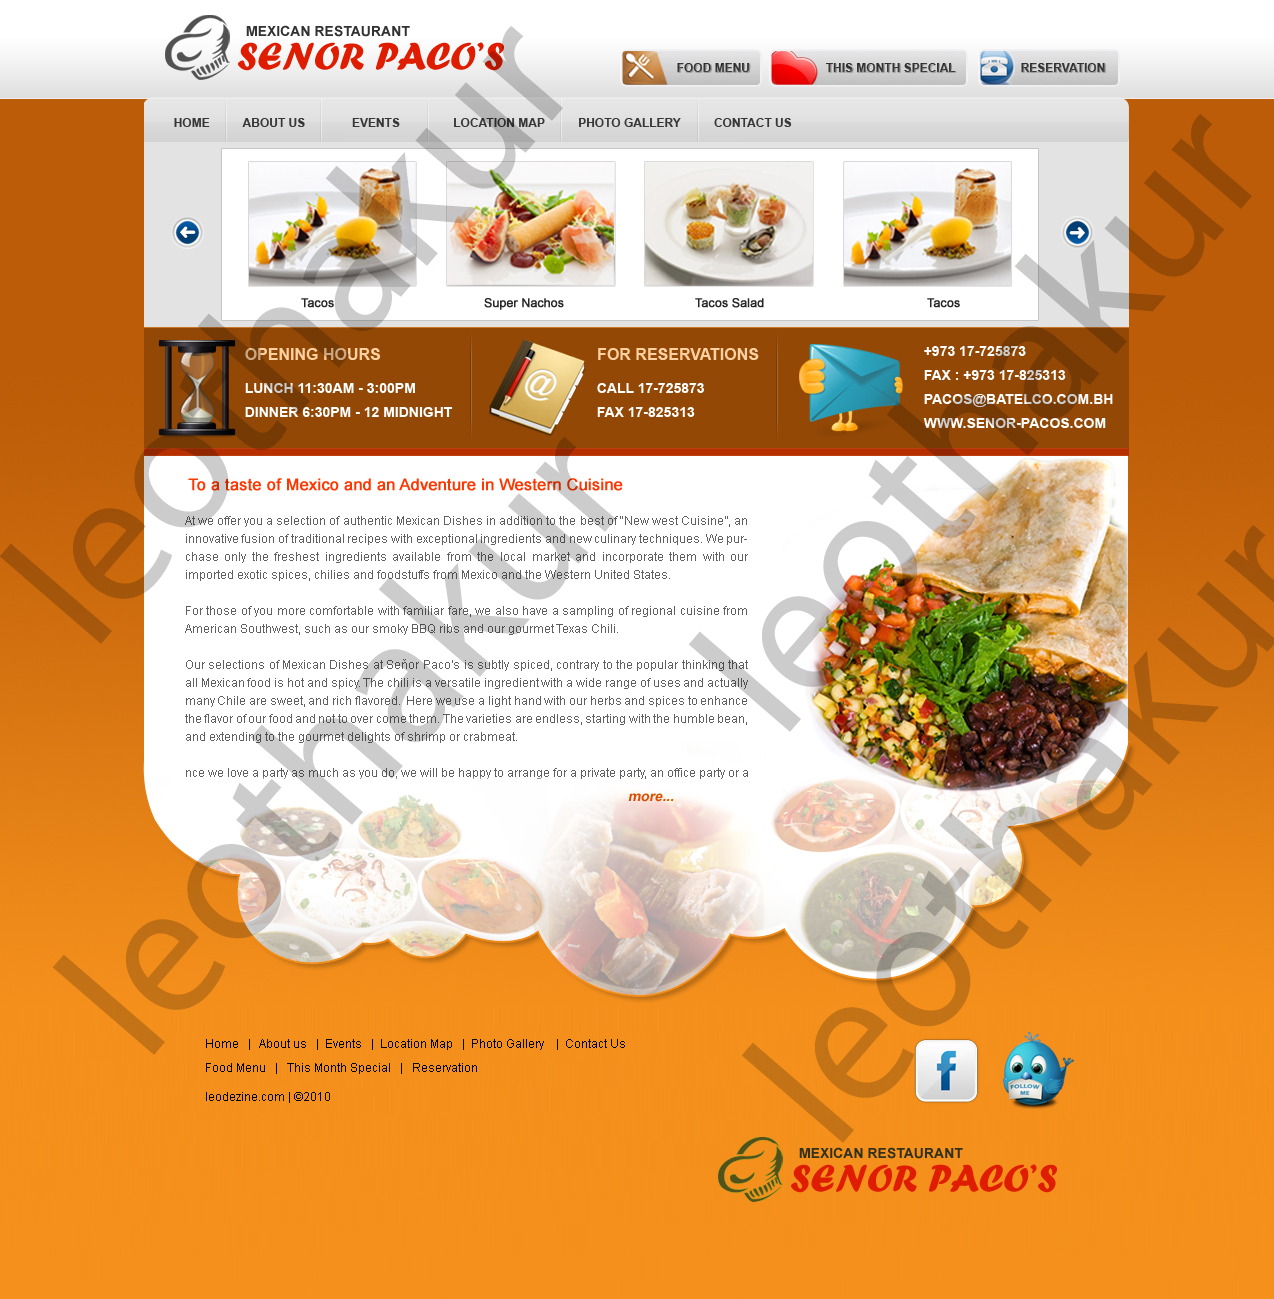 Incredible restaurant layout design by leothakur designs interfaces web  1274 x 1299 · 849 kB · jpeg